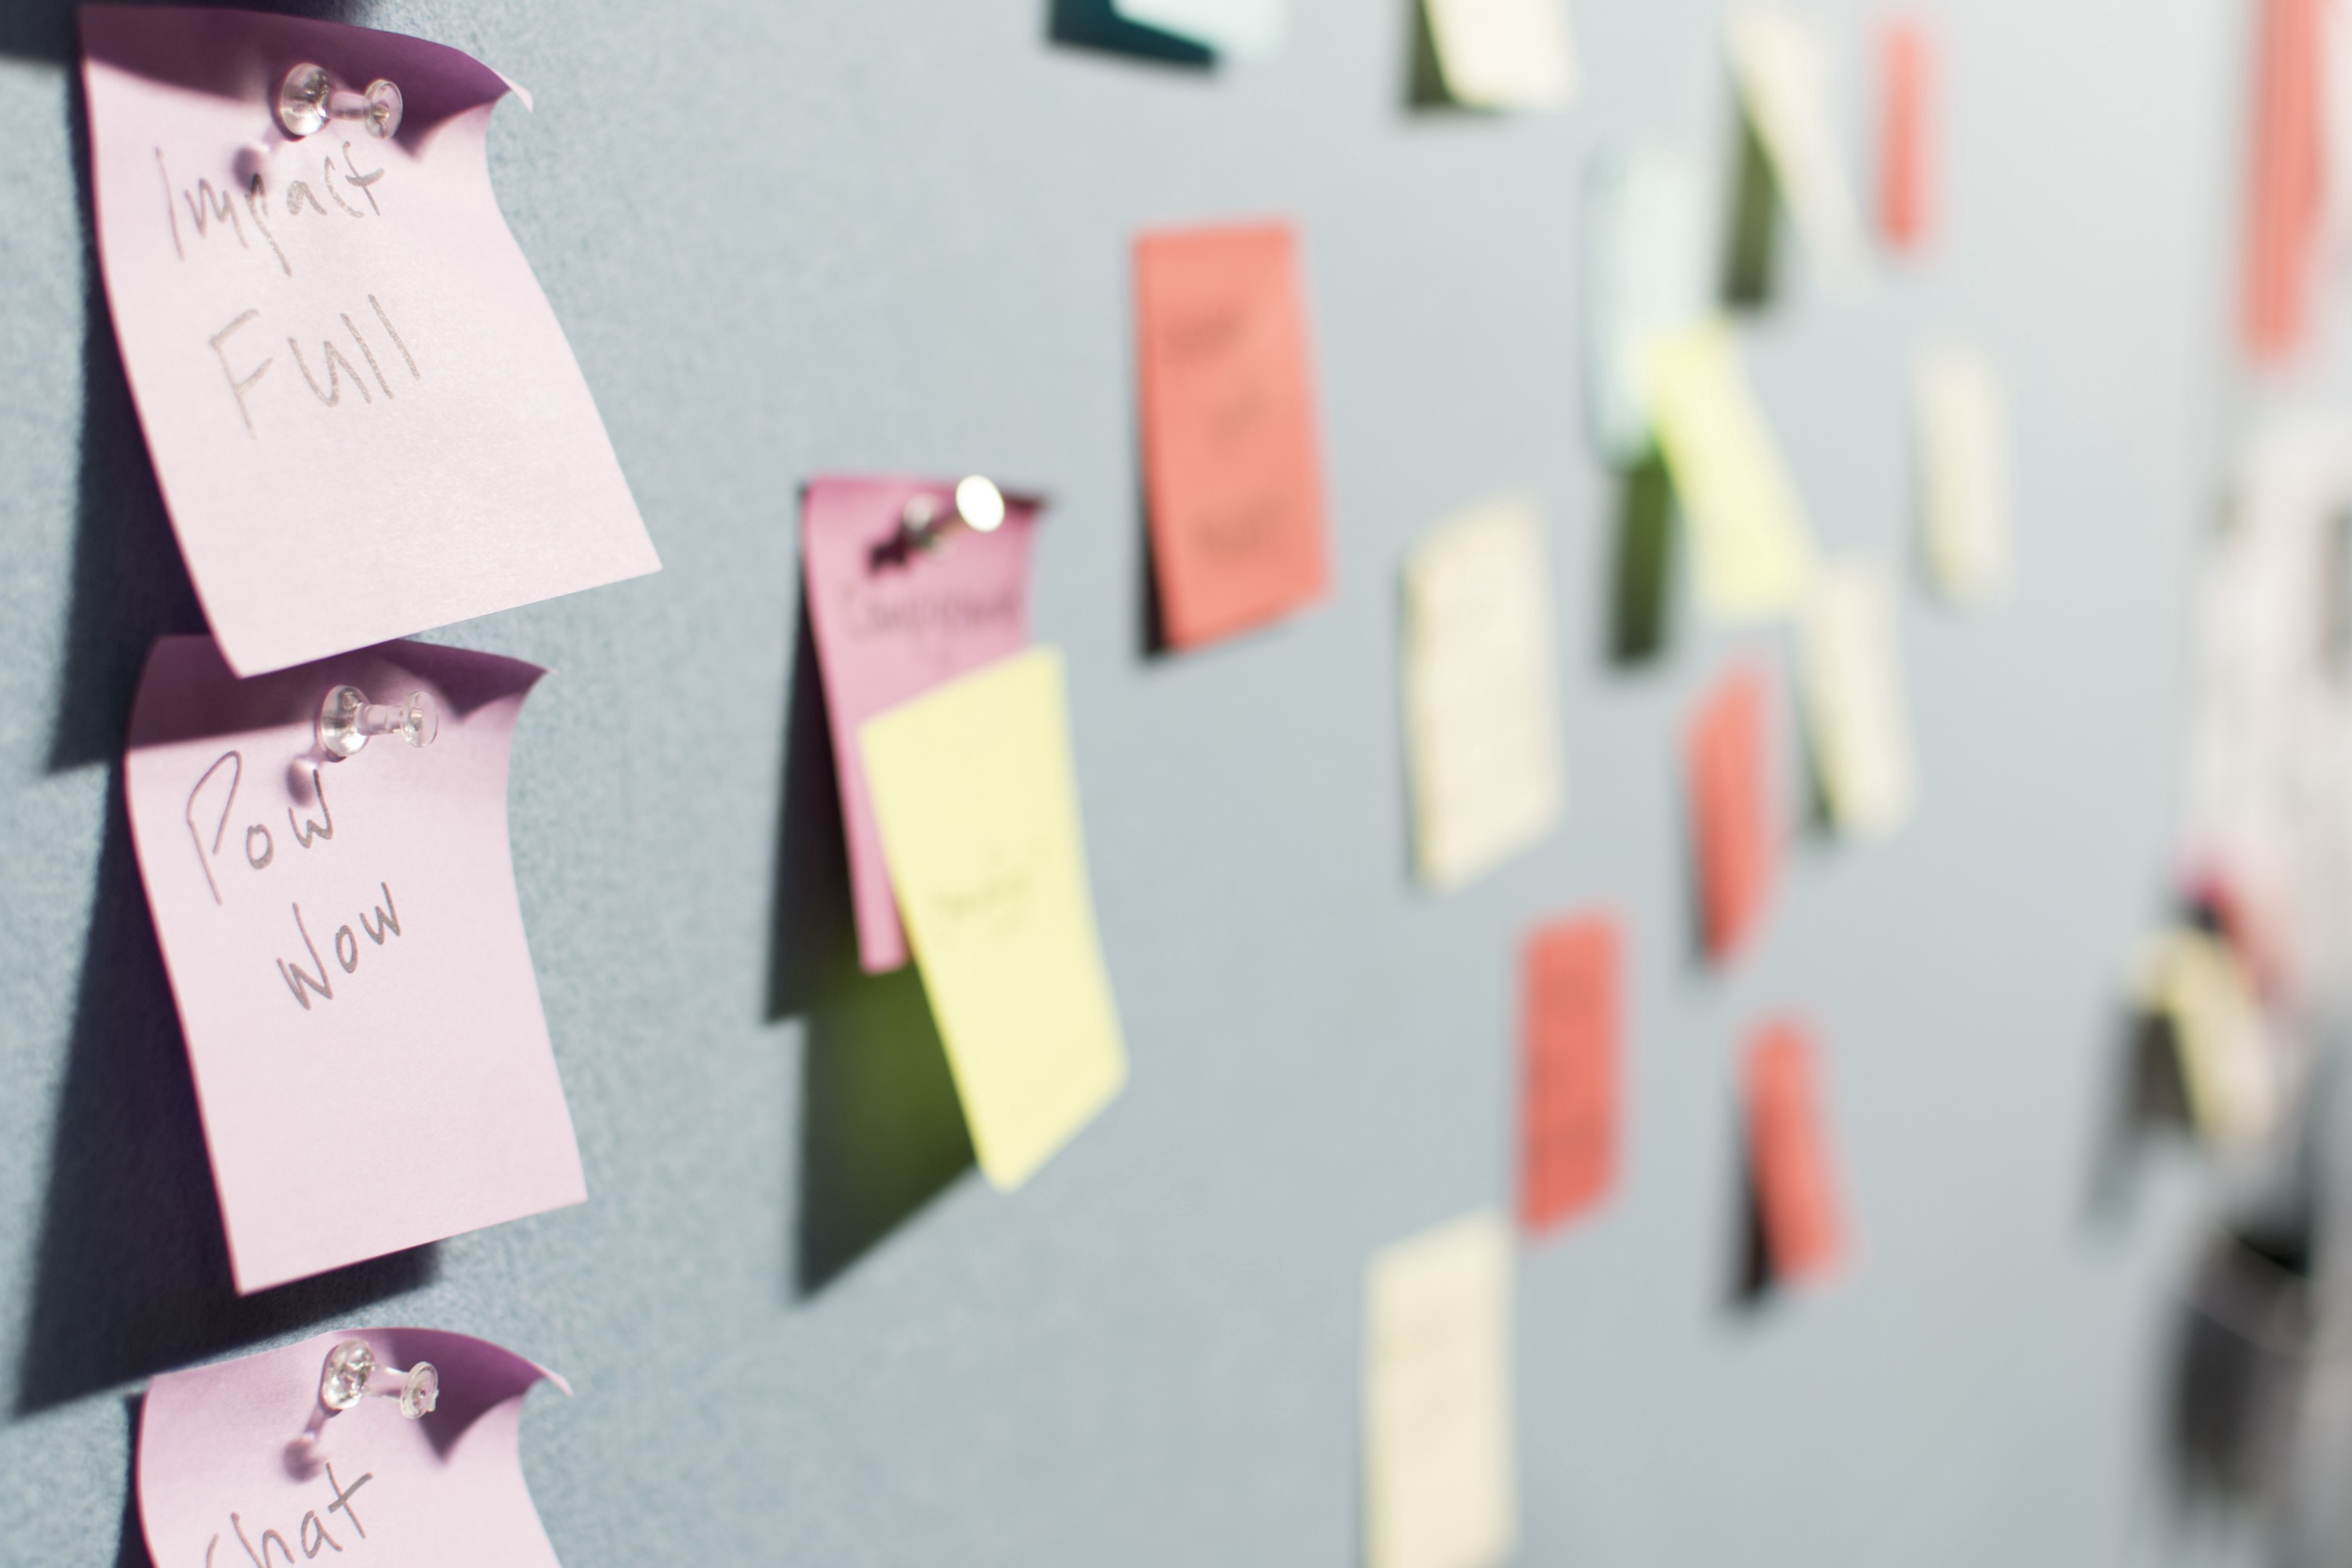 Post-it notes stuck all over a bulletin board with push-pins keep the momentum going